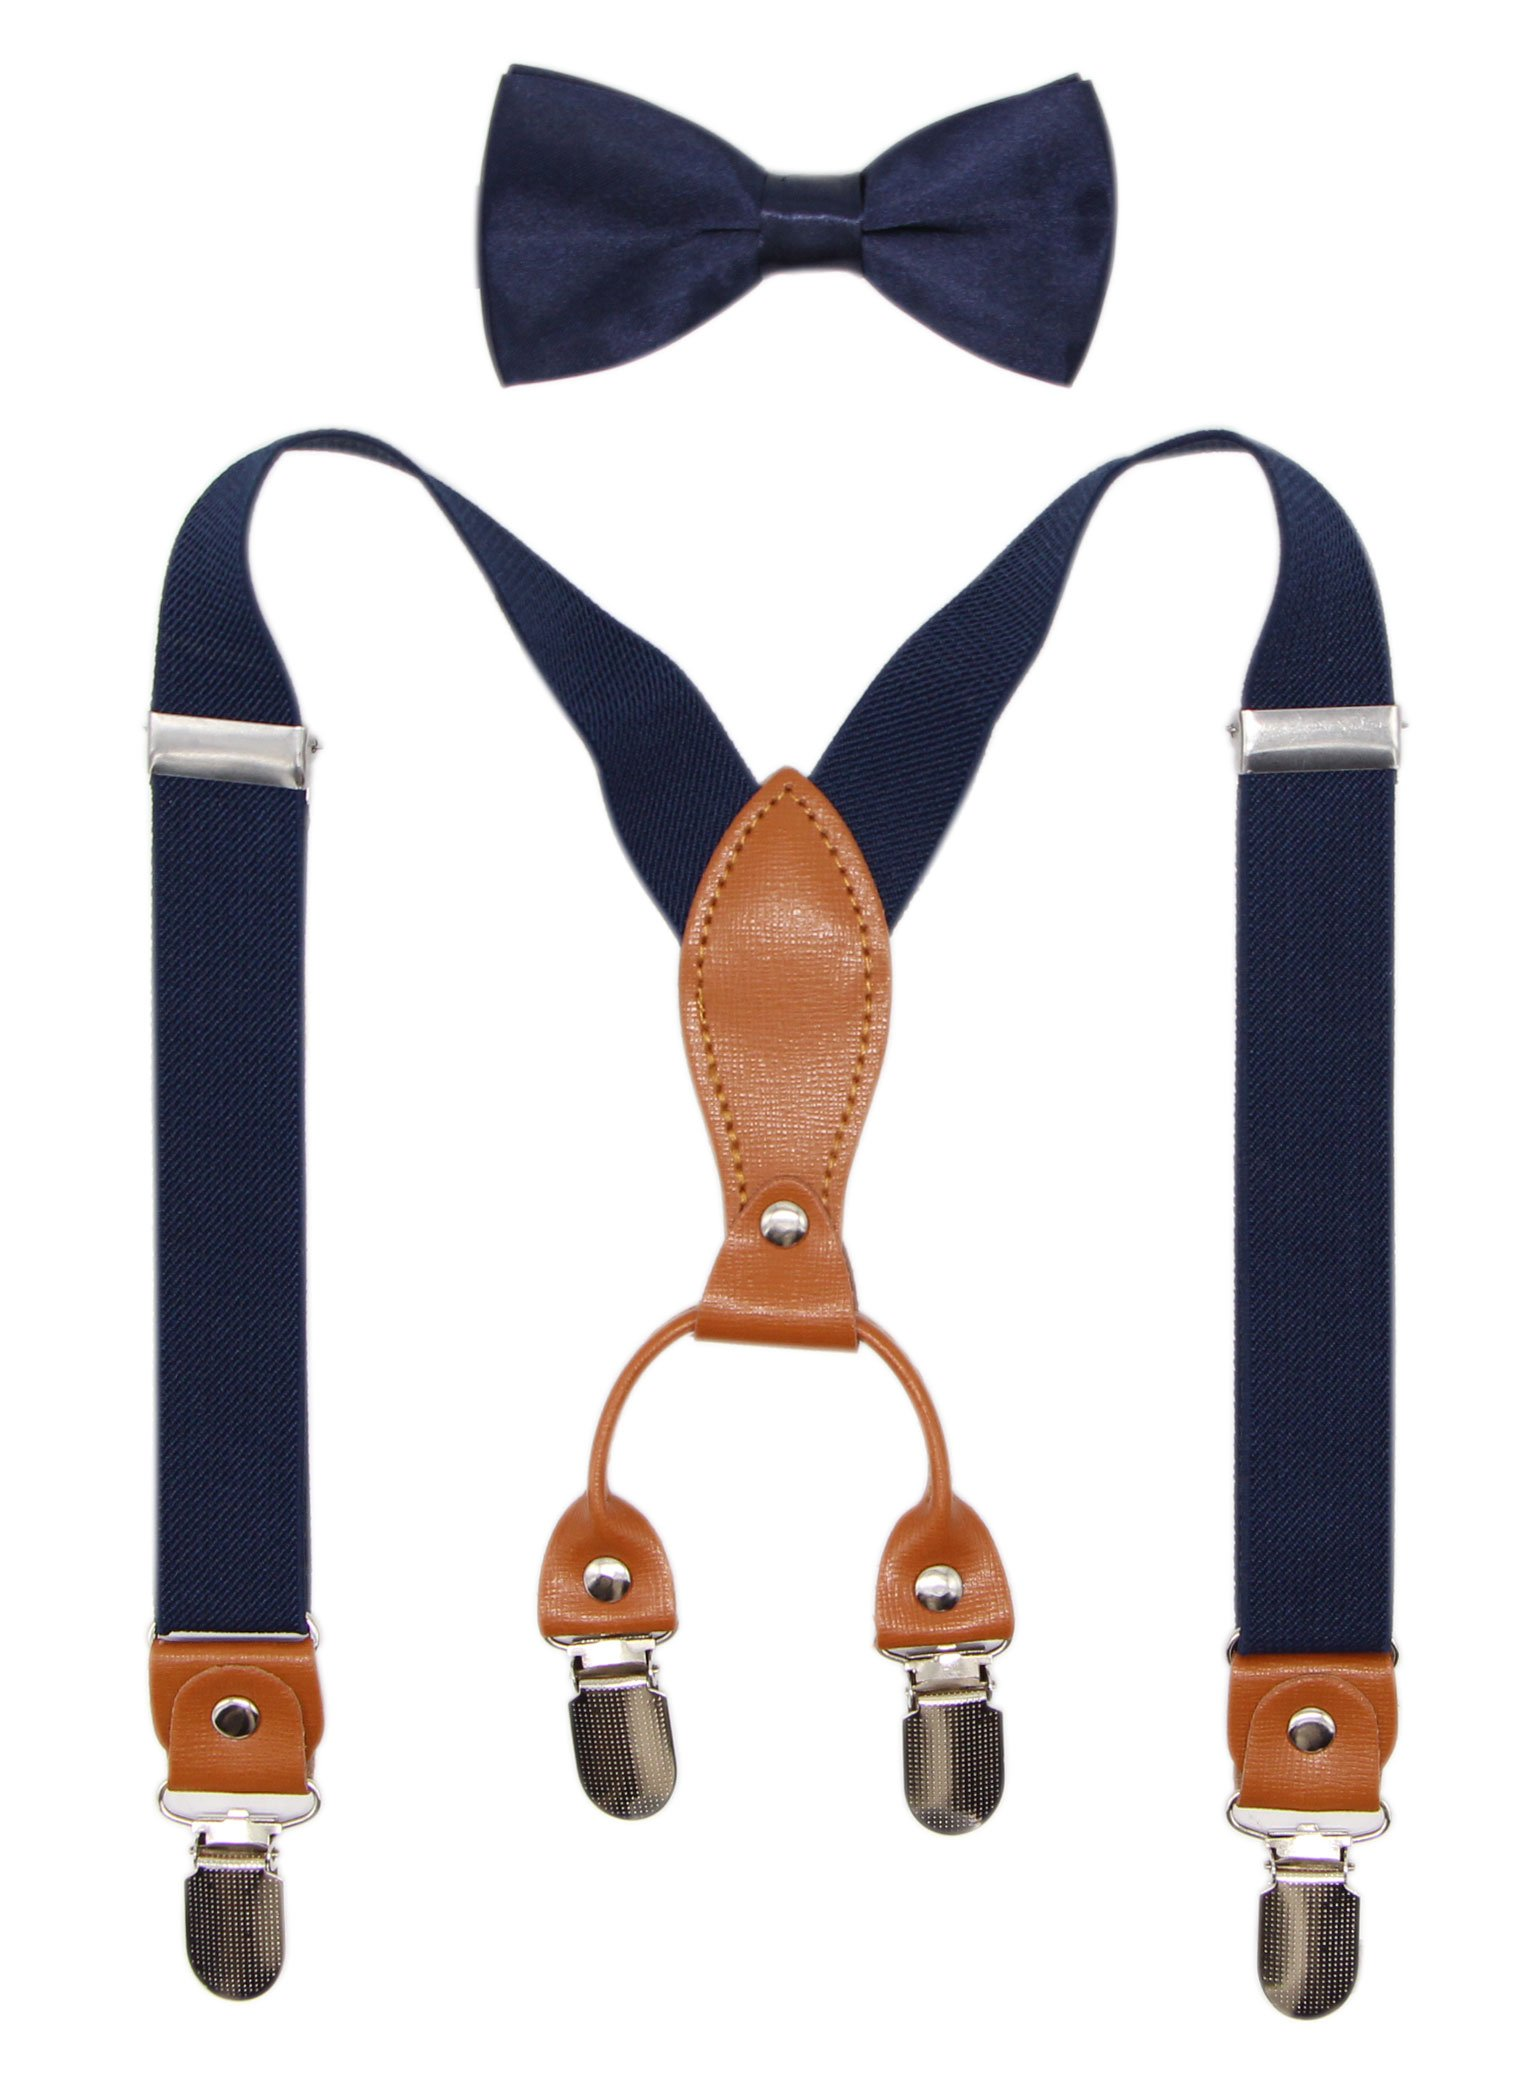 Suspenders & Bowtie Set for Kids and Baby - Adjustable Elastic X-Band Strong Clips Braces (Navy)